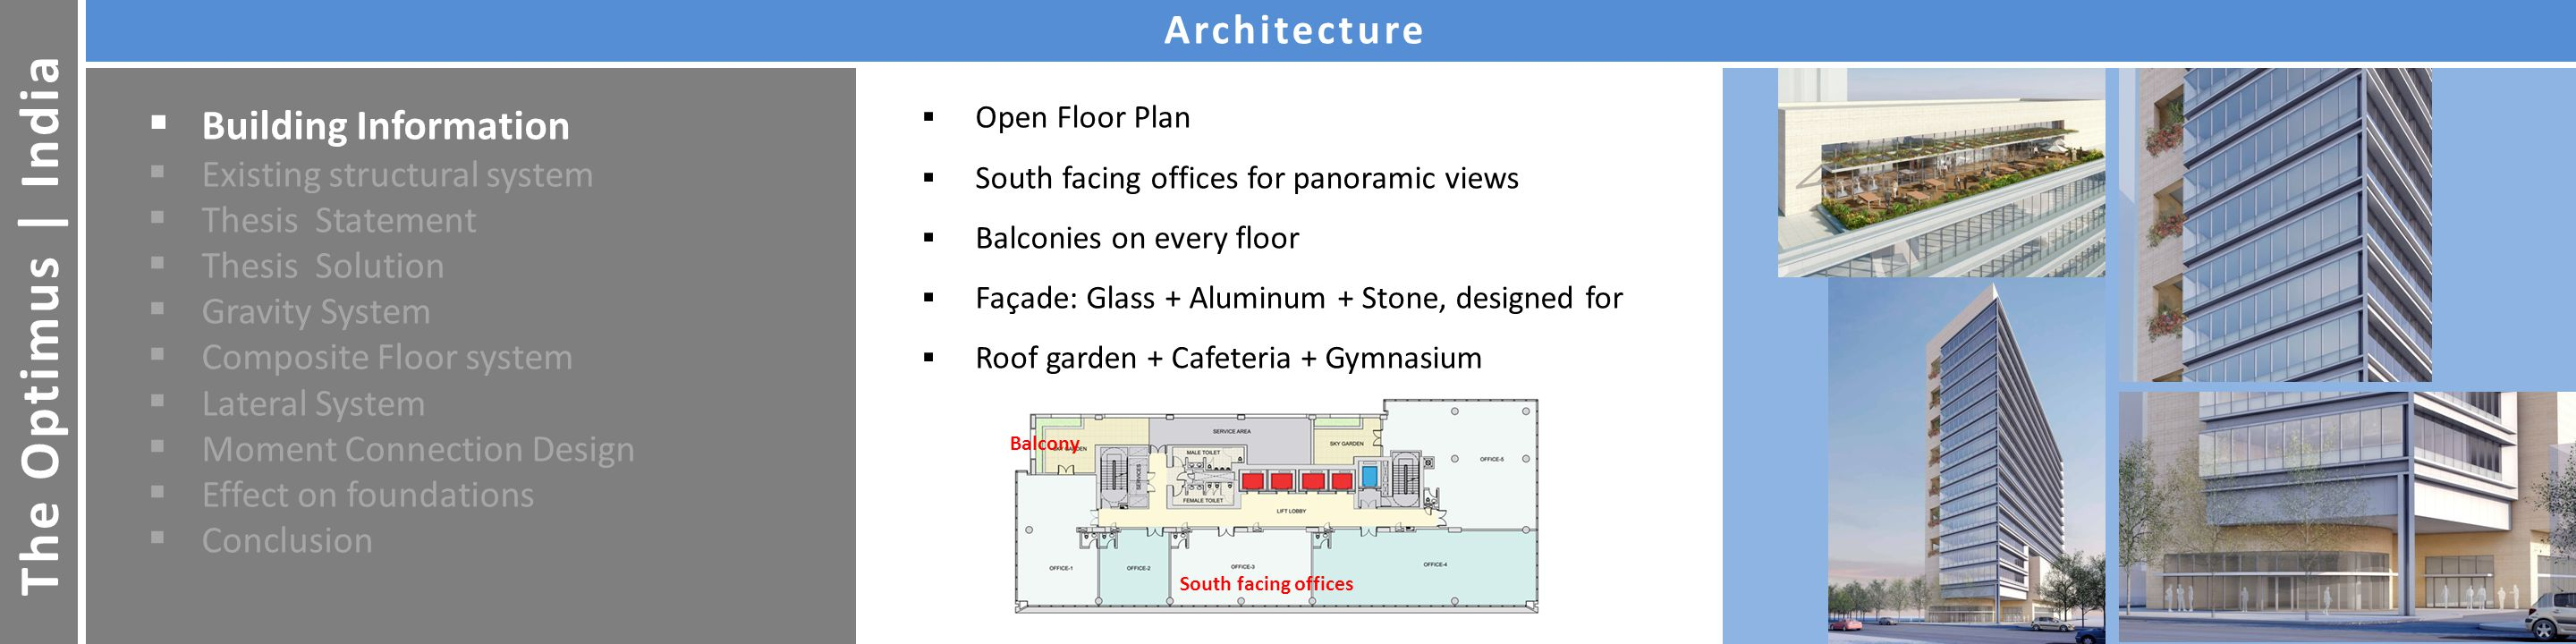 The Optimus | India Building InformationArchitecture  Building Information  Existing structural system  Thesis Statement  Thesis Solution  Gravity System  Composite Floor system  Lateral System  Moment Connection Design  Effect on foundations  Conclusion  Open Floor Plan  South facing offices for panoramic views  Balconies on every floor  Façade: Glass + Aluminum + Stone, designed for  Roof garden + Cafeteria + Gymnasium South facing offices Balcony